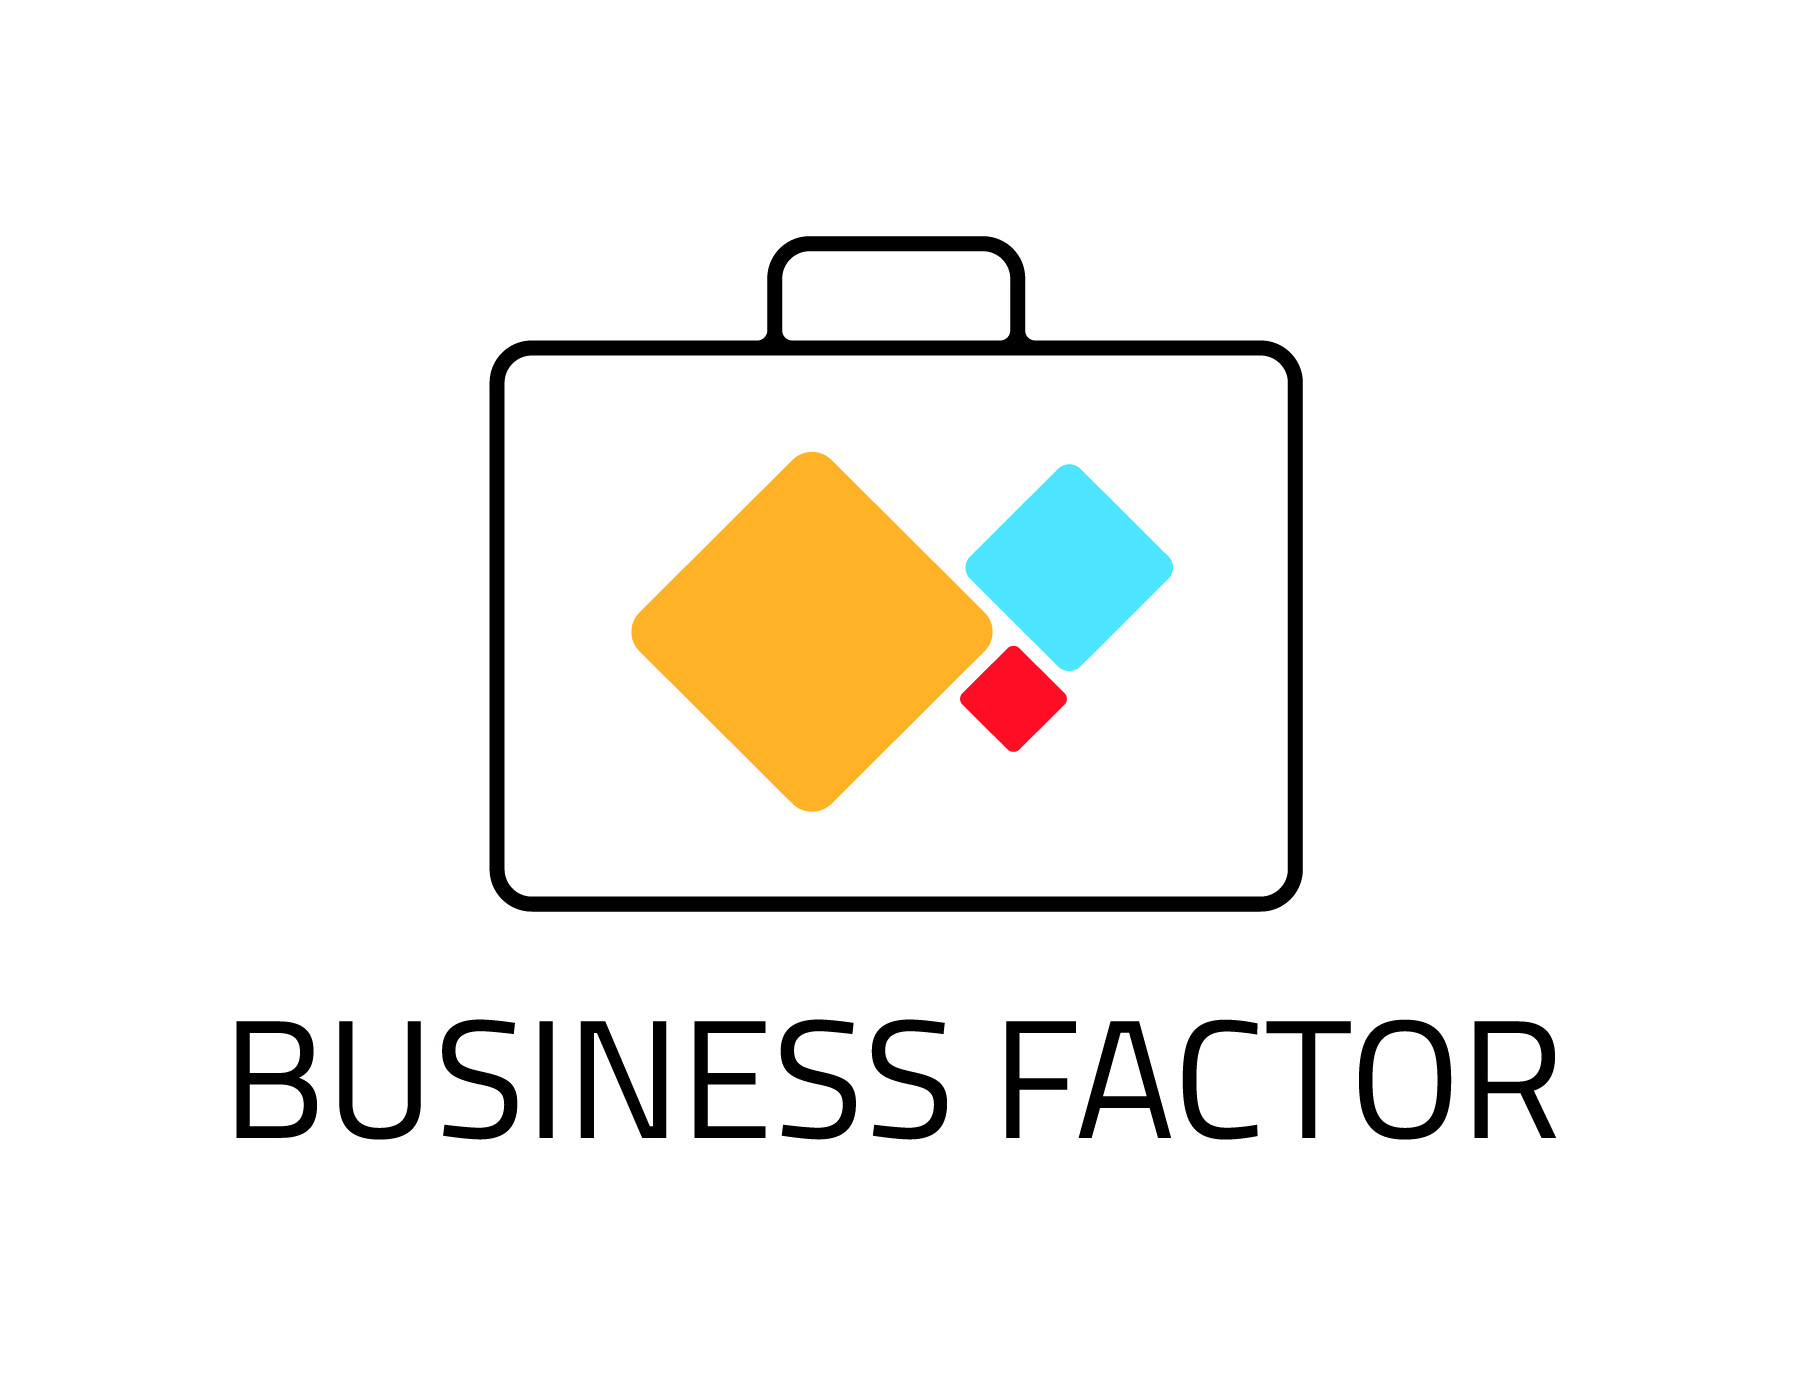 BUSINESS FACTOR